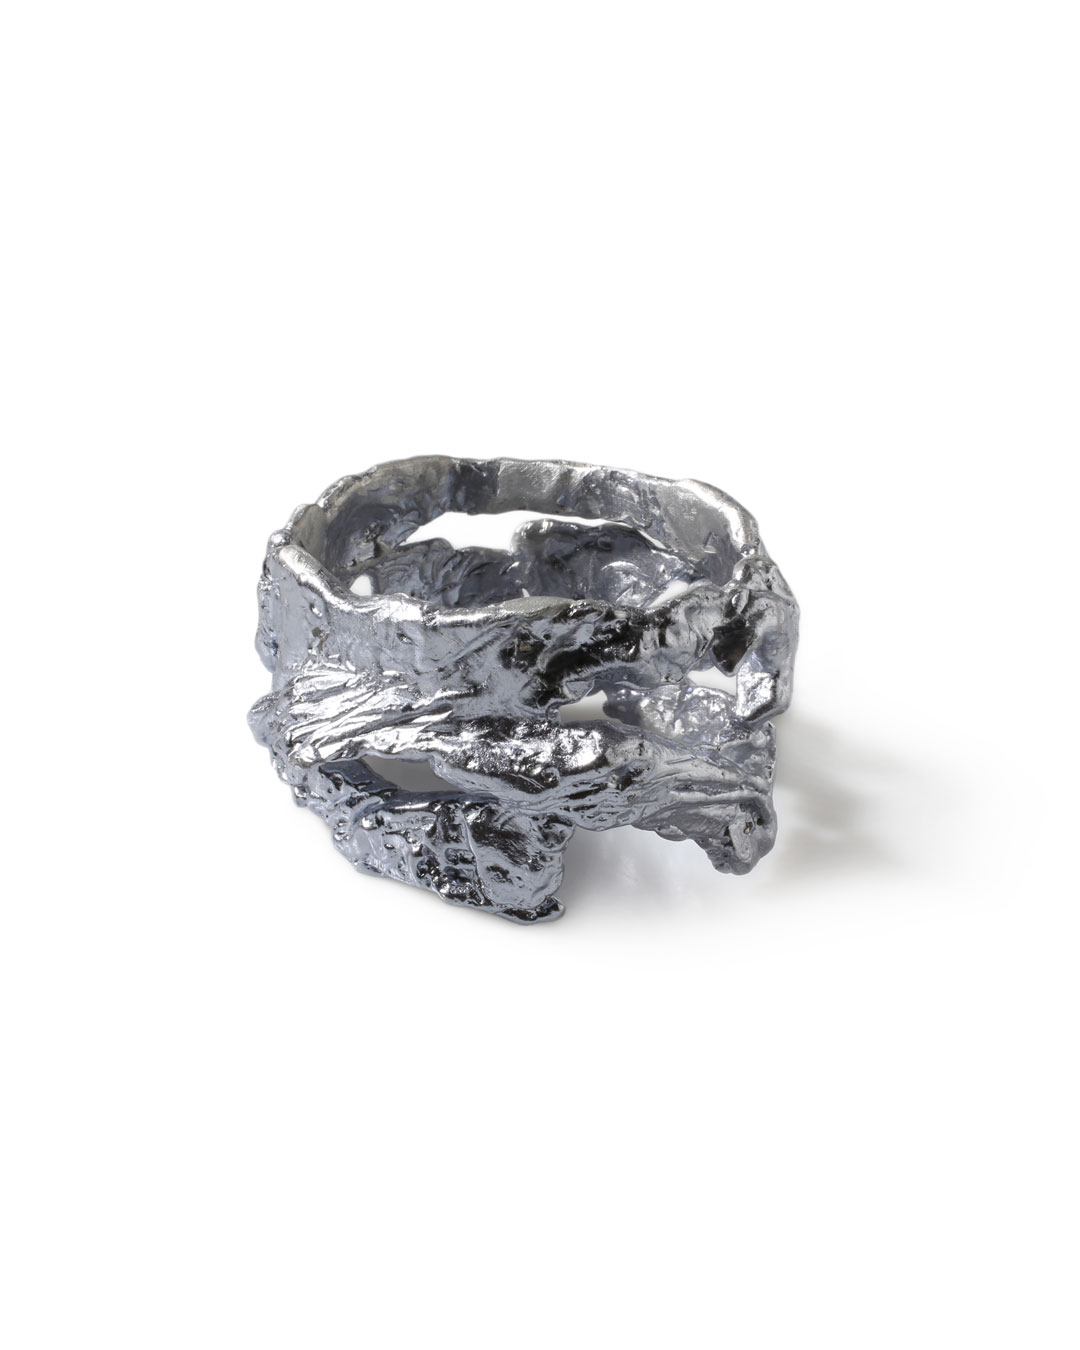 Juliane Brandes, untitled, 2013, bracelet; aluminium-manganese, 85 x 50 mm, €1100